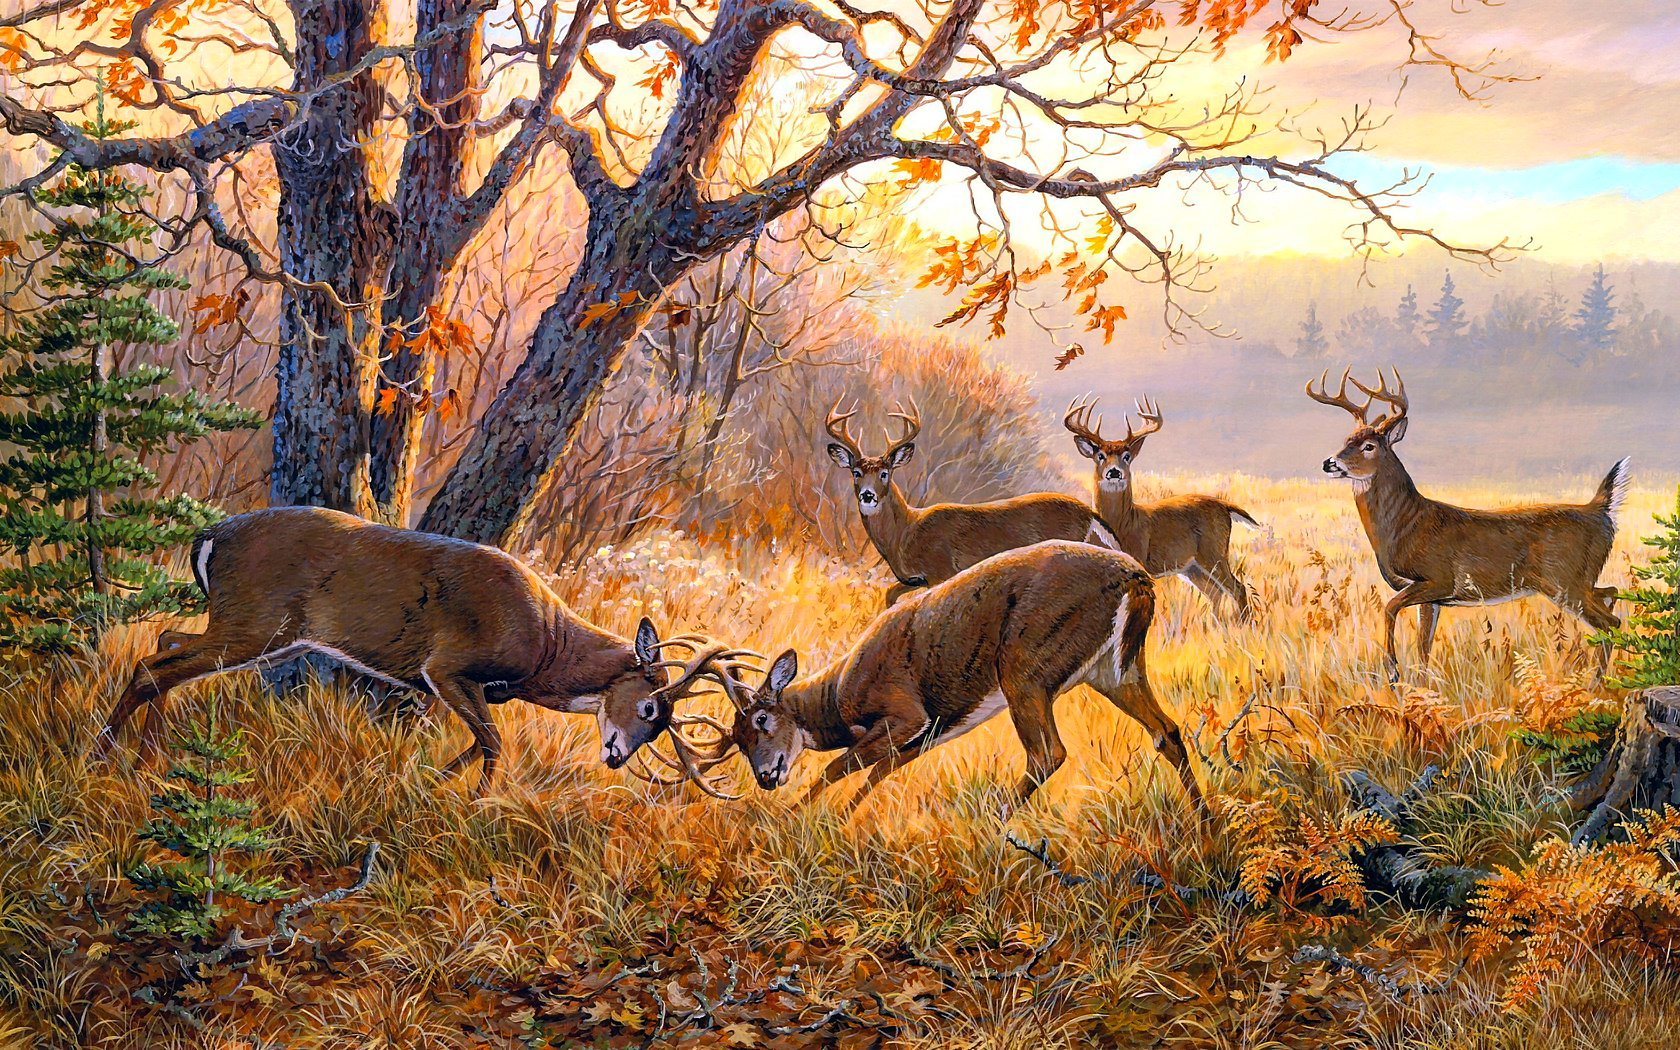 en automne les cerfs Wallpaper   ForWallpapercom 1680x1050